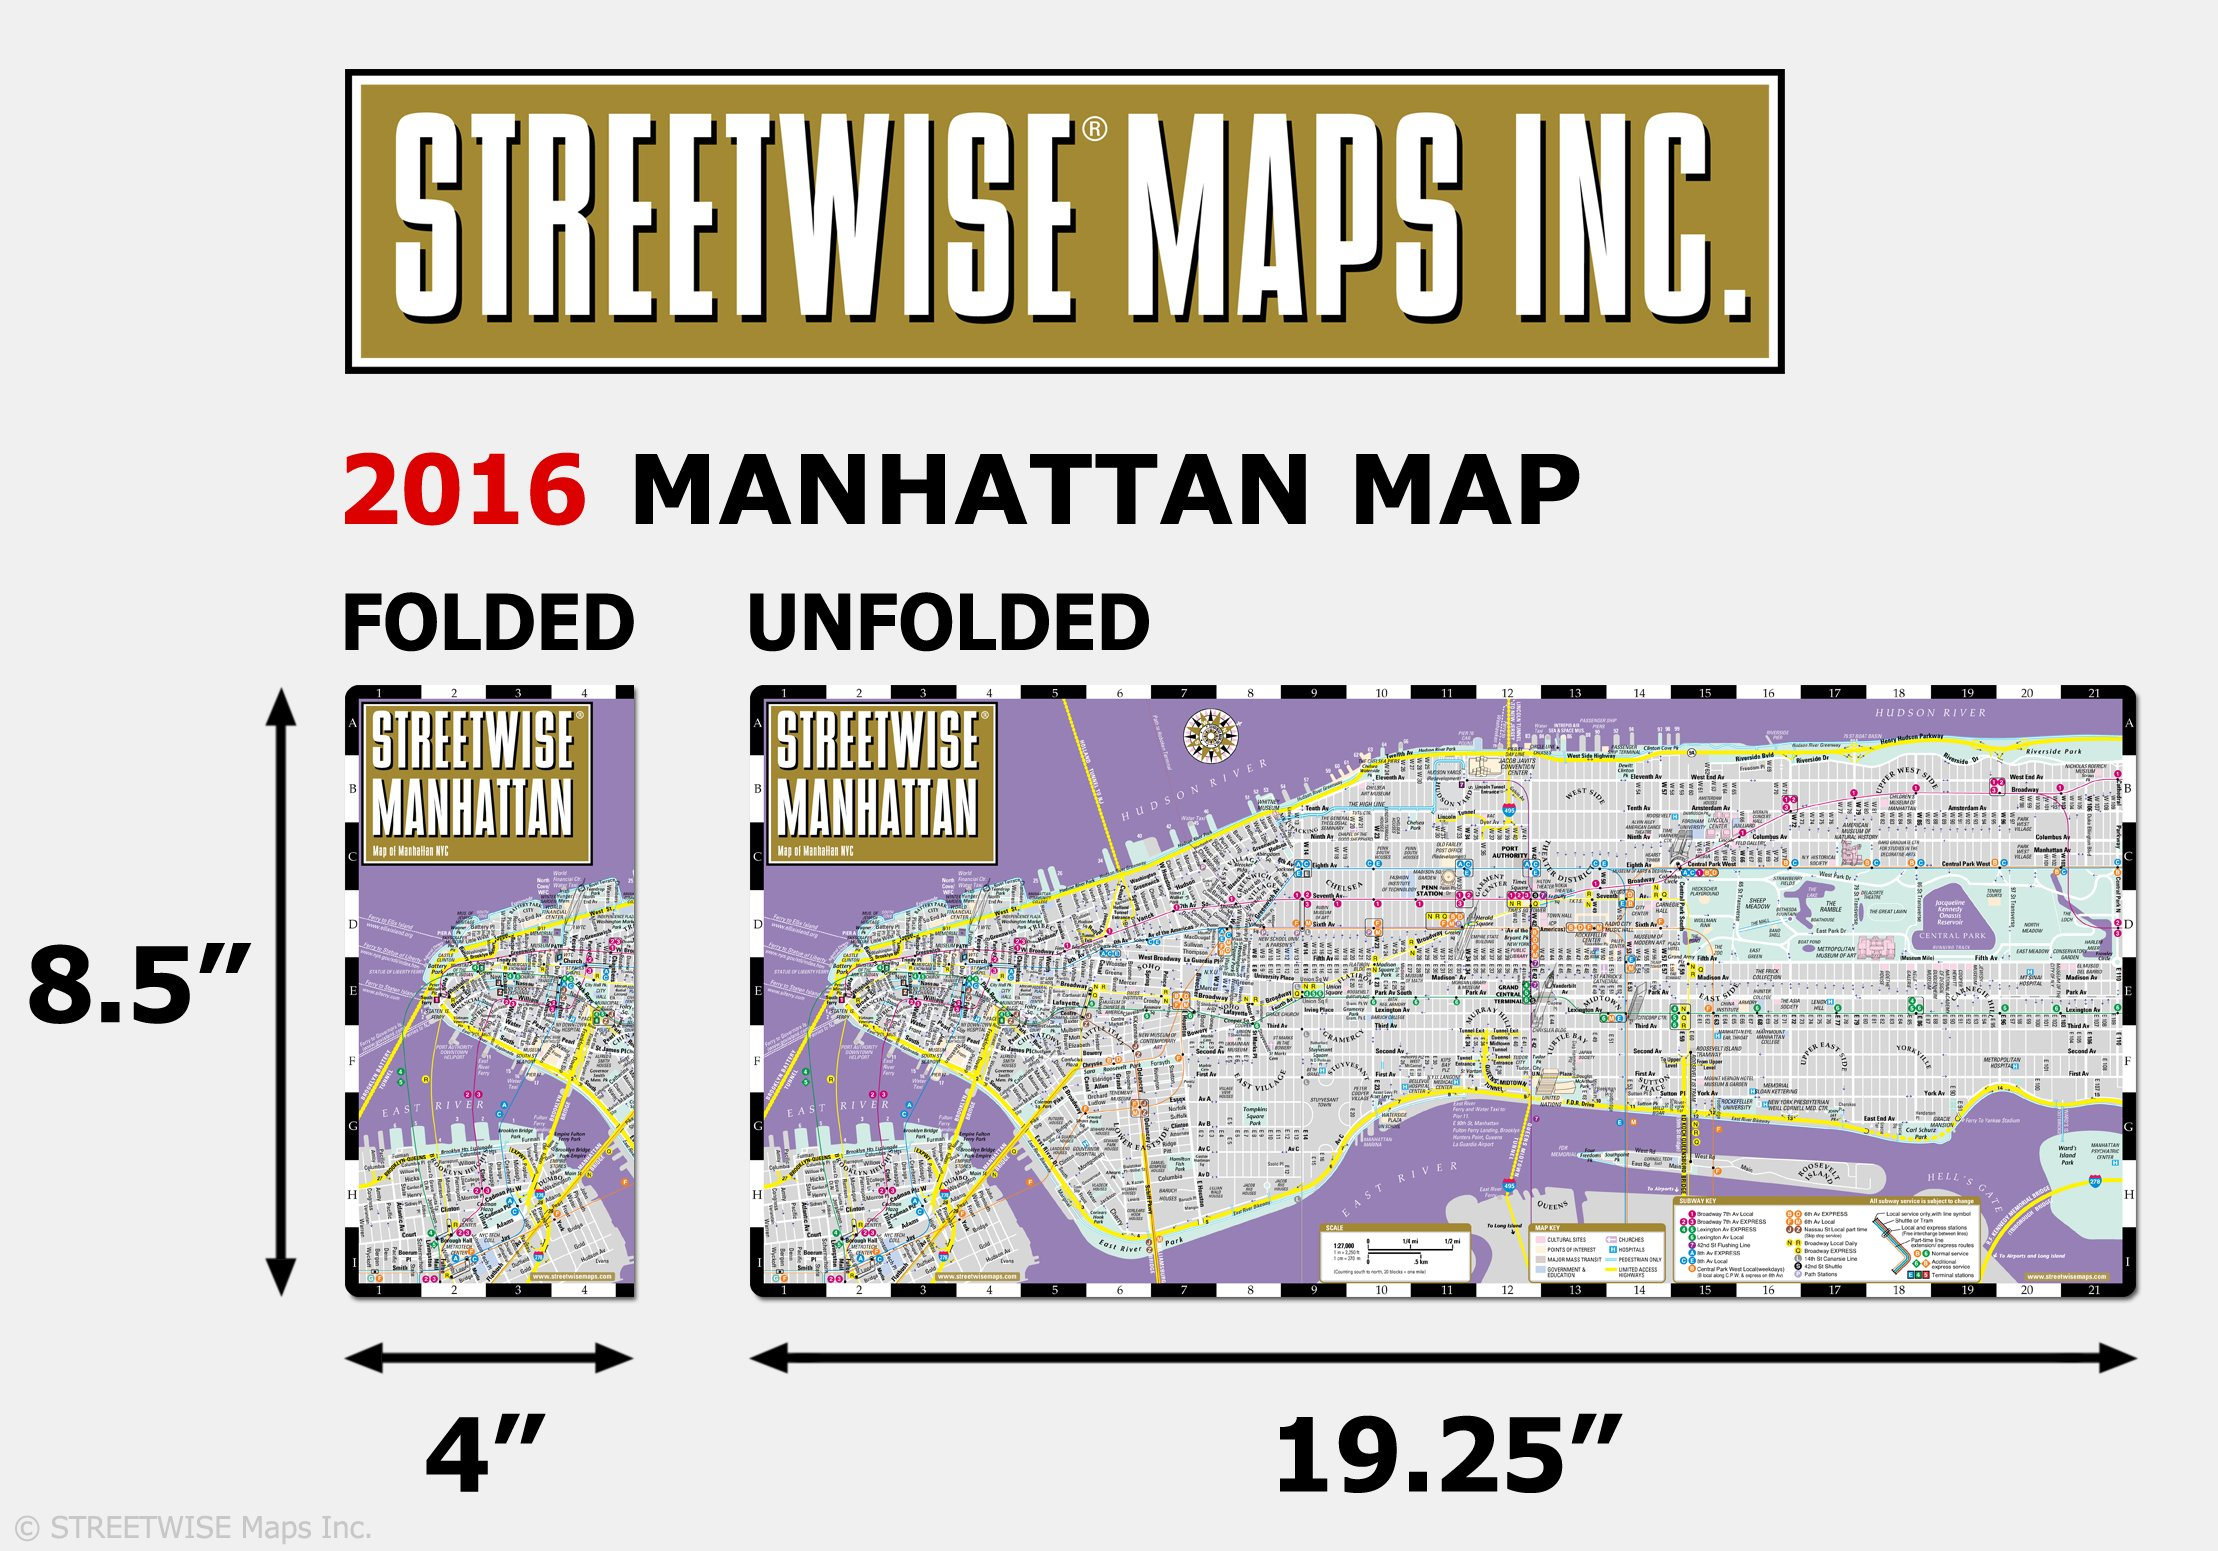 Nyc Subway Map Directions on metro map directions, nyc subway history, nyc subway gifts, nyc subway banners, nyc transit map, nyc subway information, new york map directions, nyc subway help, nyc subway crafts, new york subway directions, nyc metro map, nyc subway wallpaper 1920x1080, nyc subway navigation, nyc subway search, nyc subway 4 maps, nyc subway wall decal,